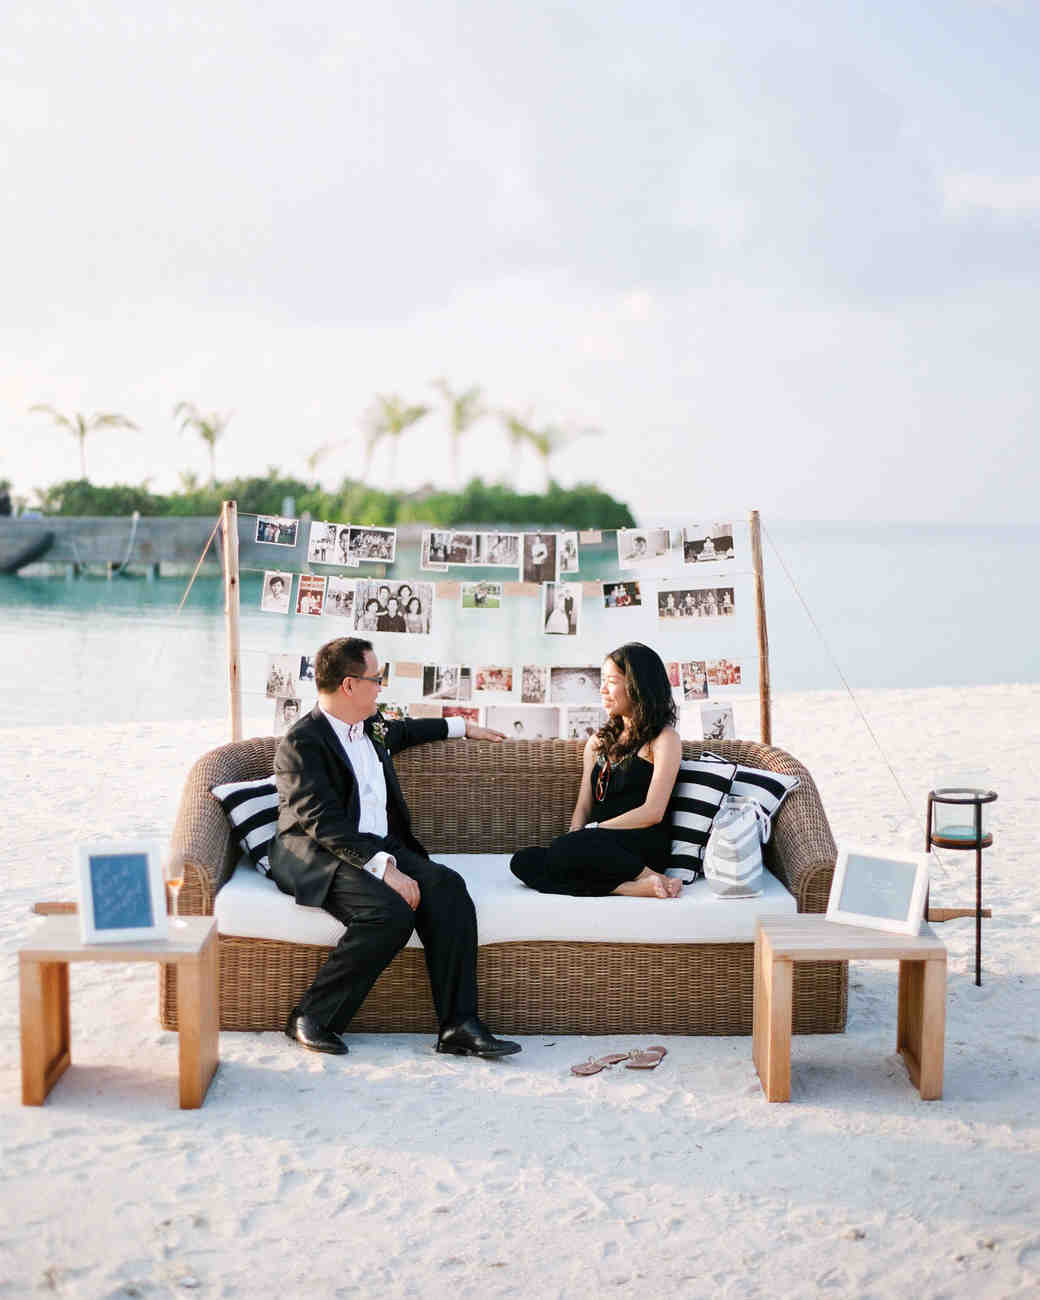 peony-richard-wedding-maldives-lounge-area-on-beach-1873-s112383.jpg